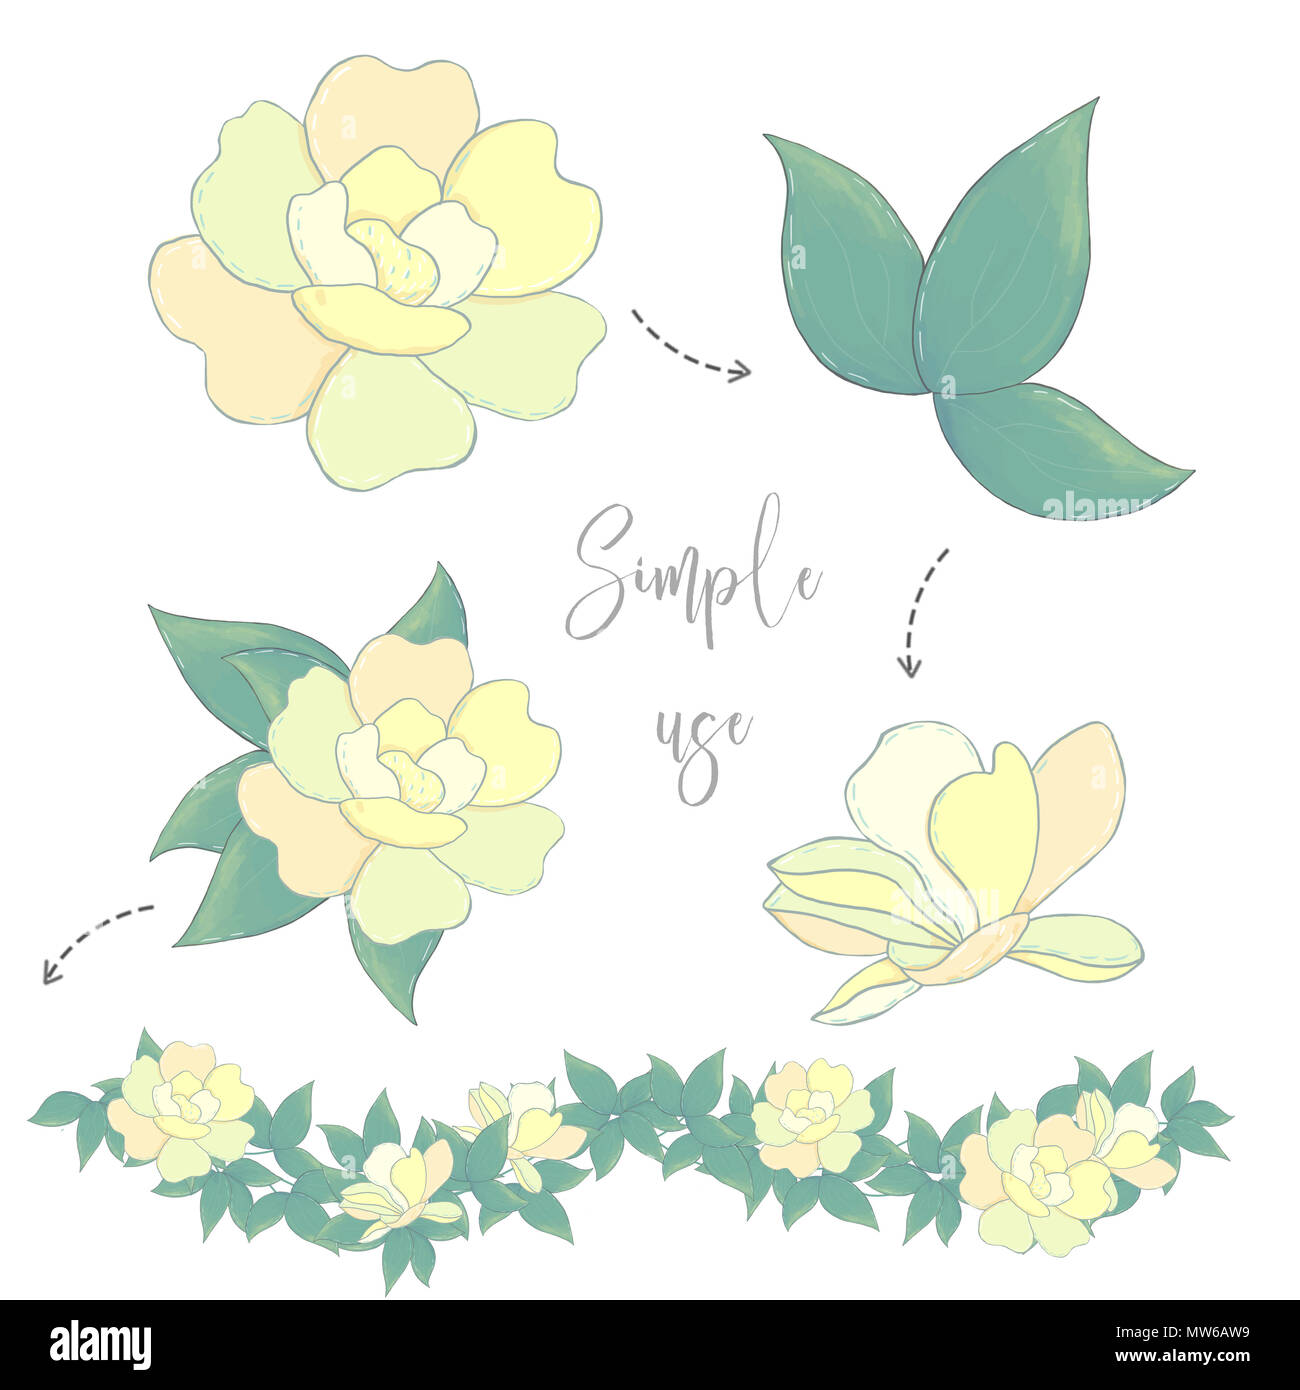 Design Flowers Yellow Flowers Clip Art Illustration Digital Drawing